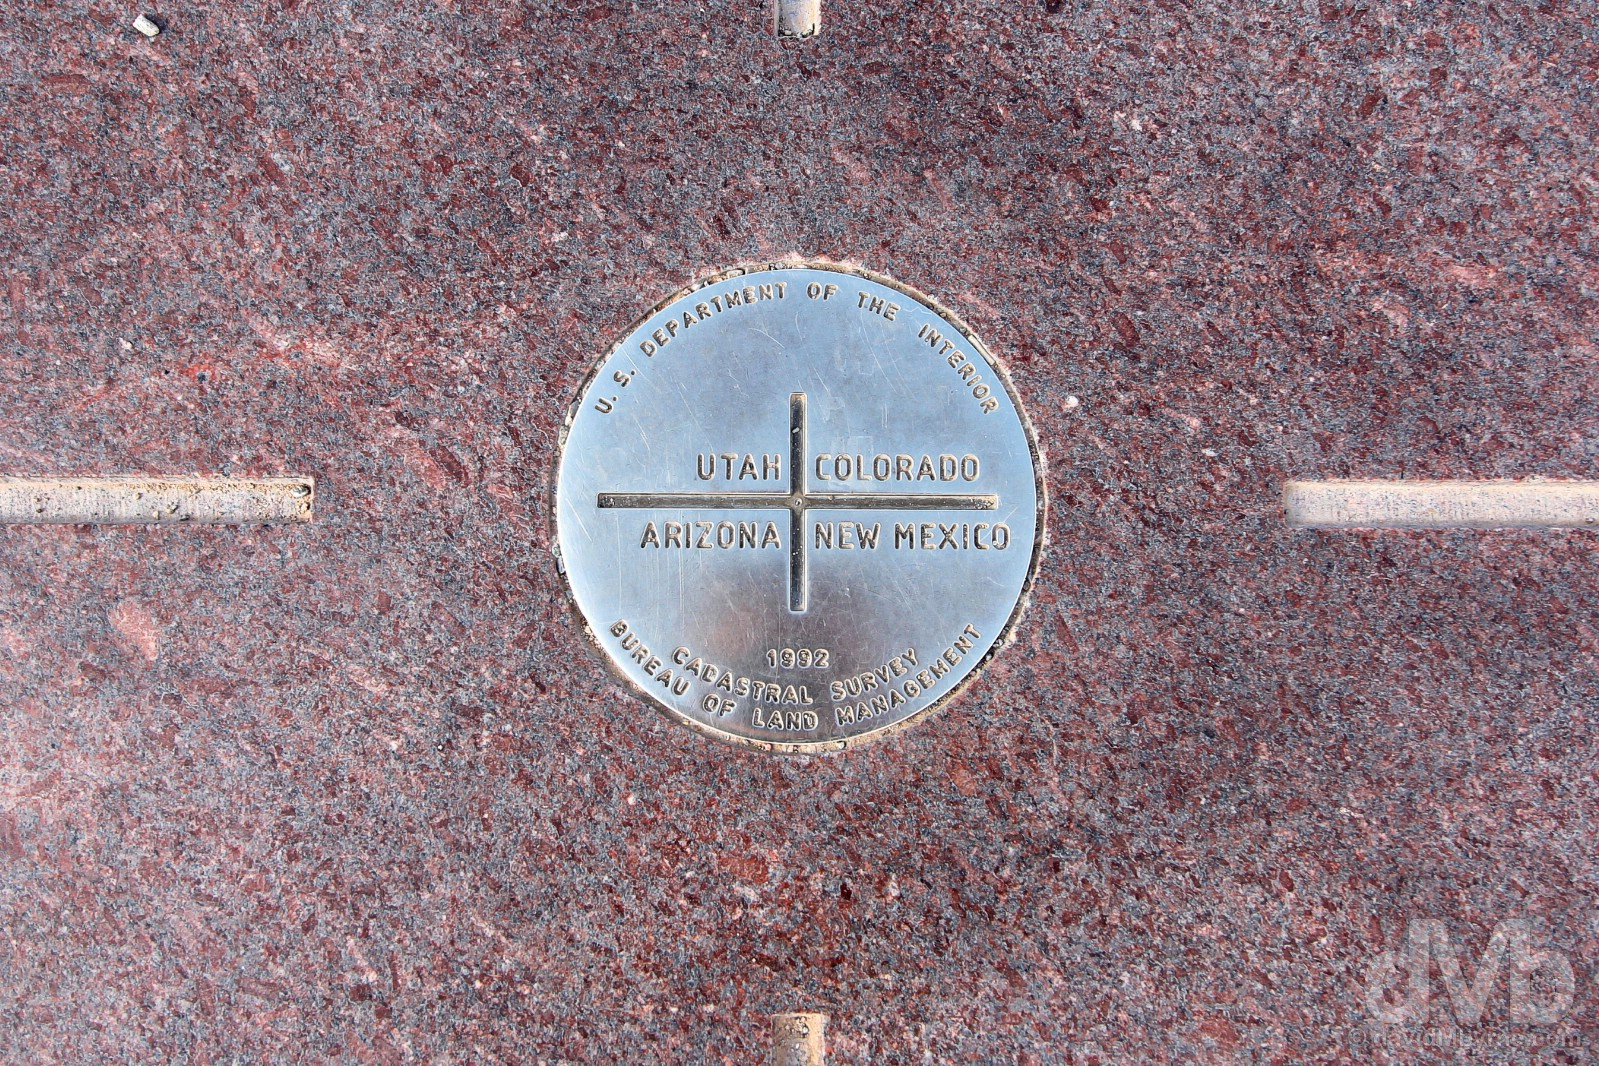 At the Four Corners Monument in Southwest USA. September 11, 2016.